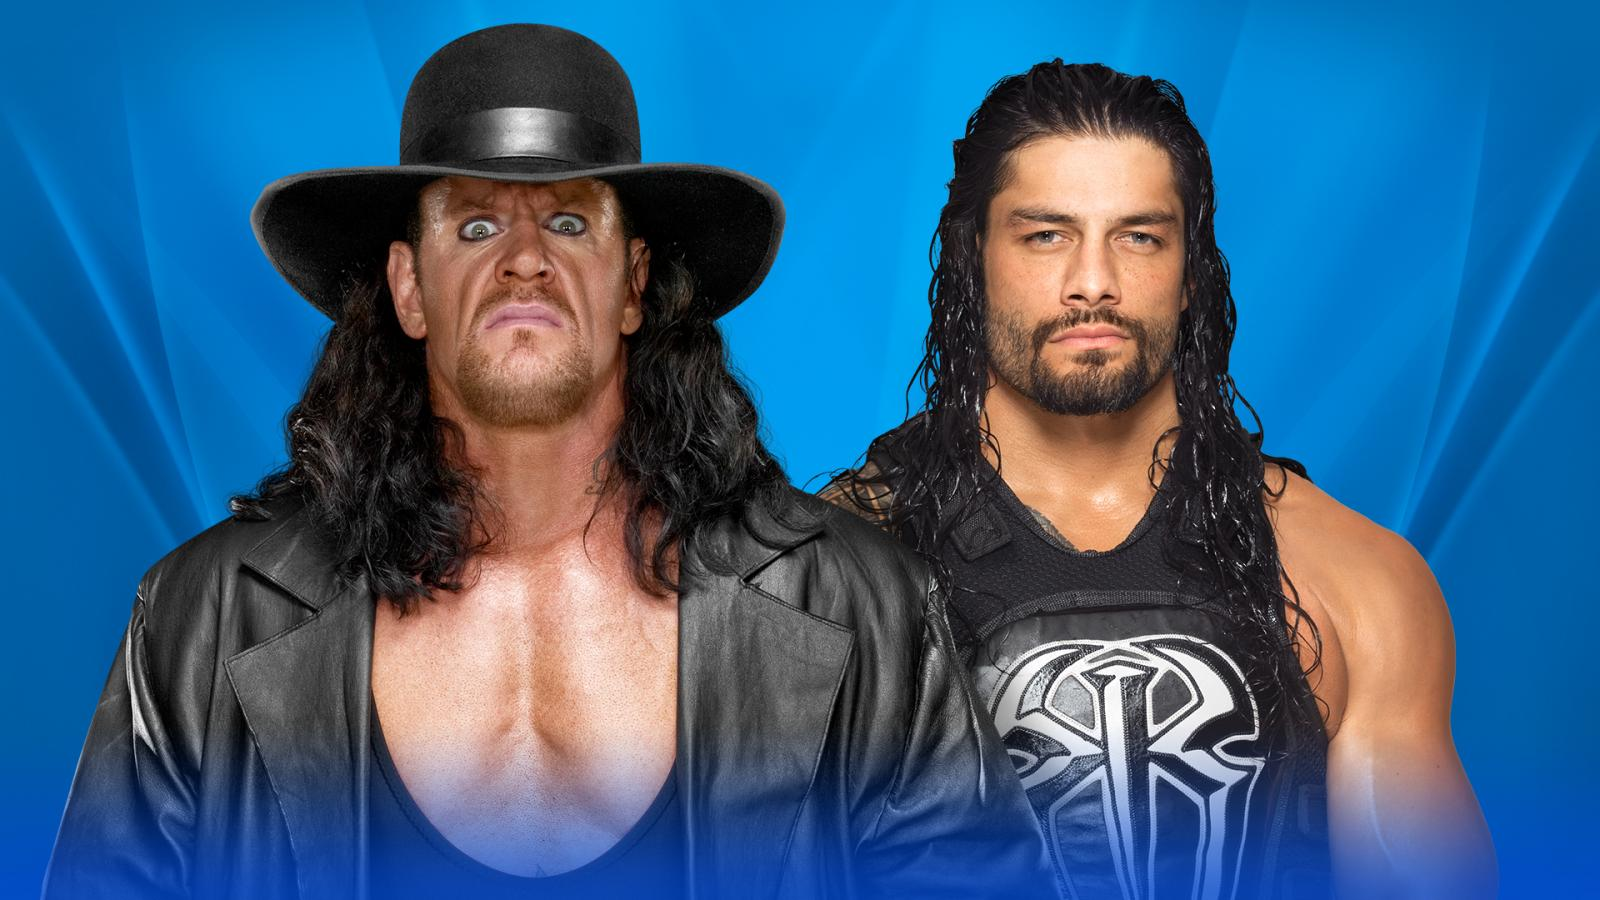 Roman Reigns vs The Undertaker: Will this be The Undertaker's last match?